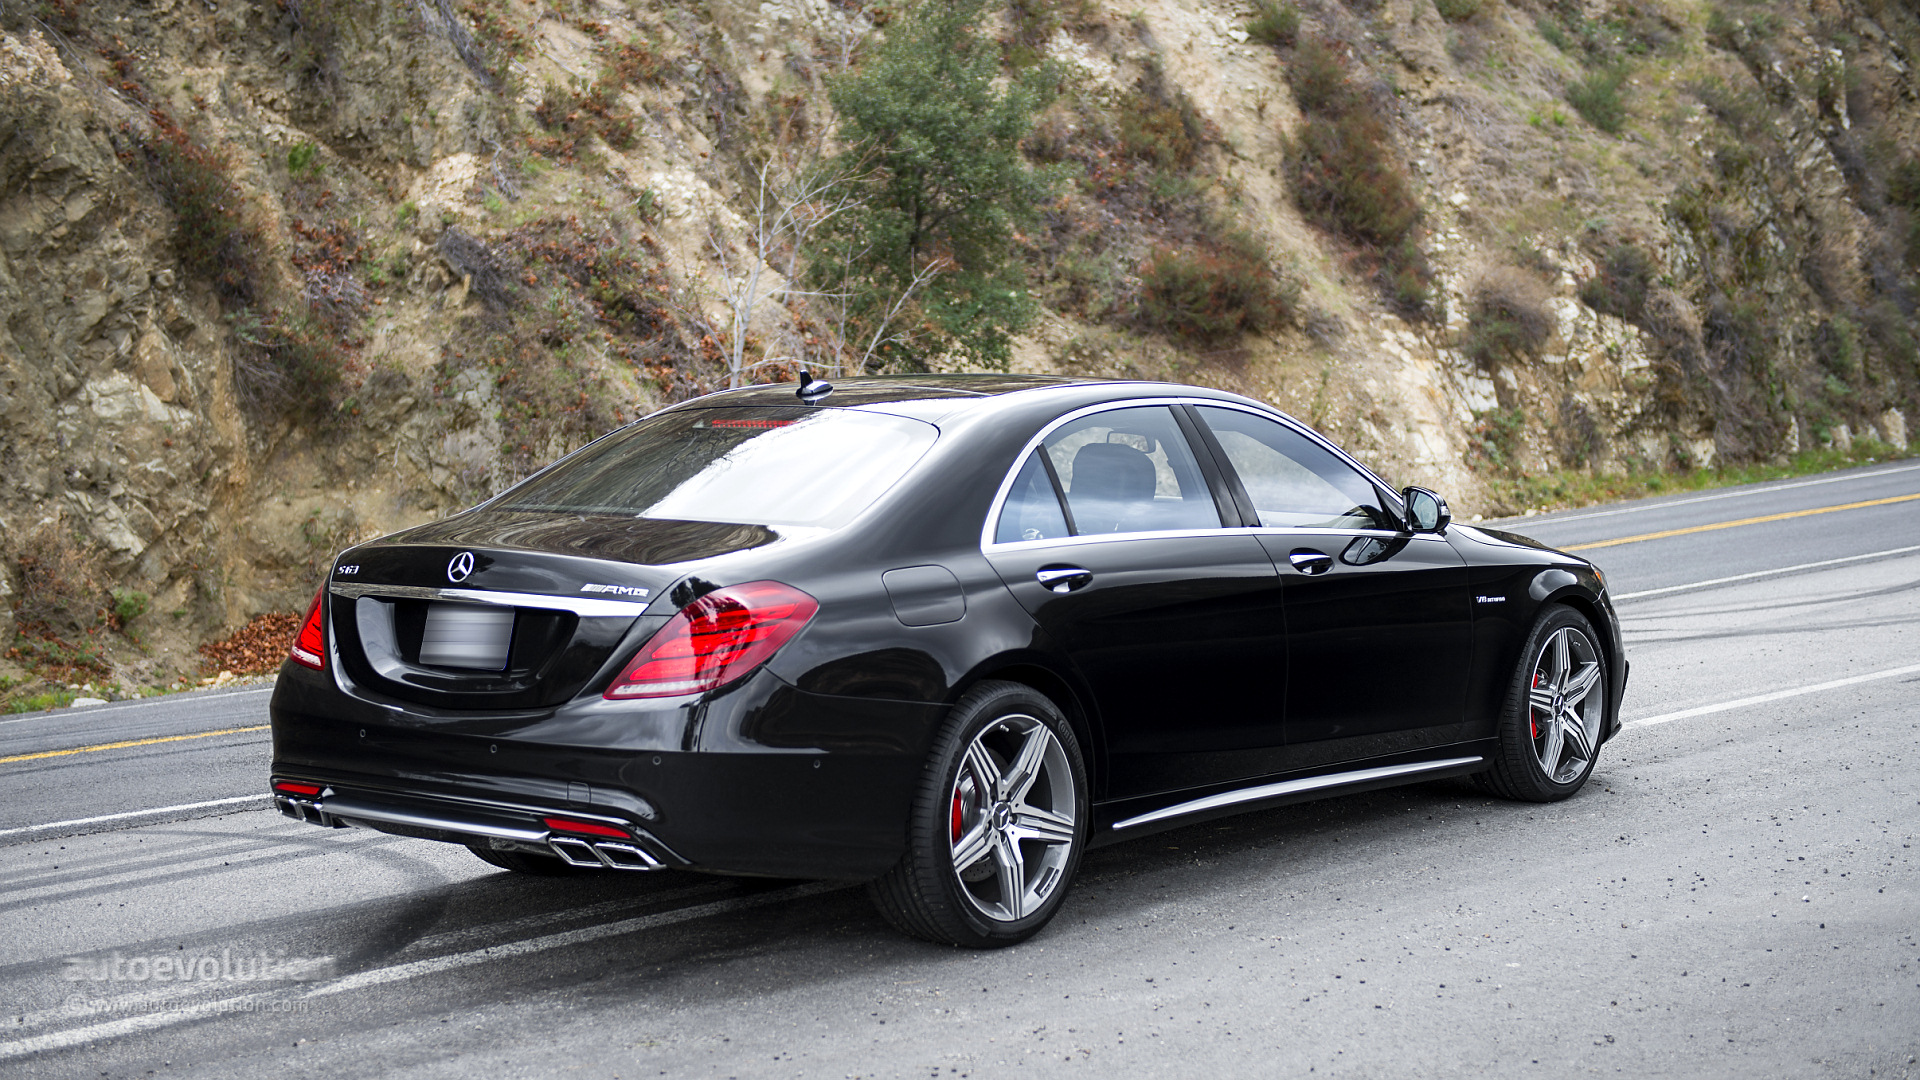 Mercedes benz s 63 amg 4matic tested by autoevolution for Mercedes benz s 63 amg